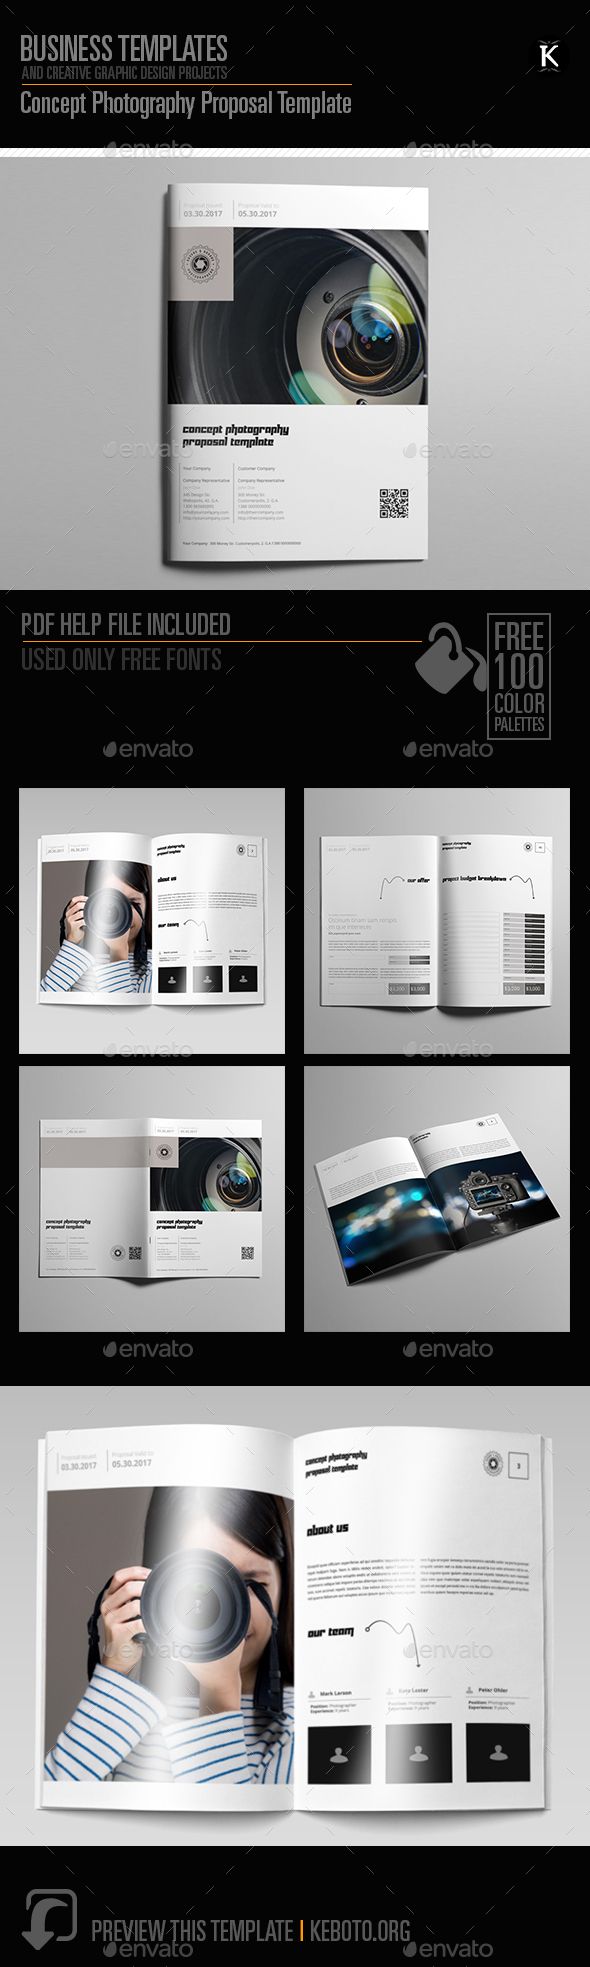 Concept Photography Proposal Template - Proposals & Invoices Stationery